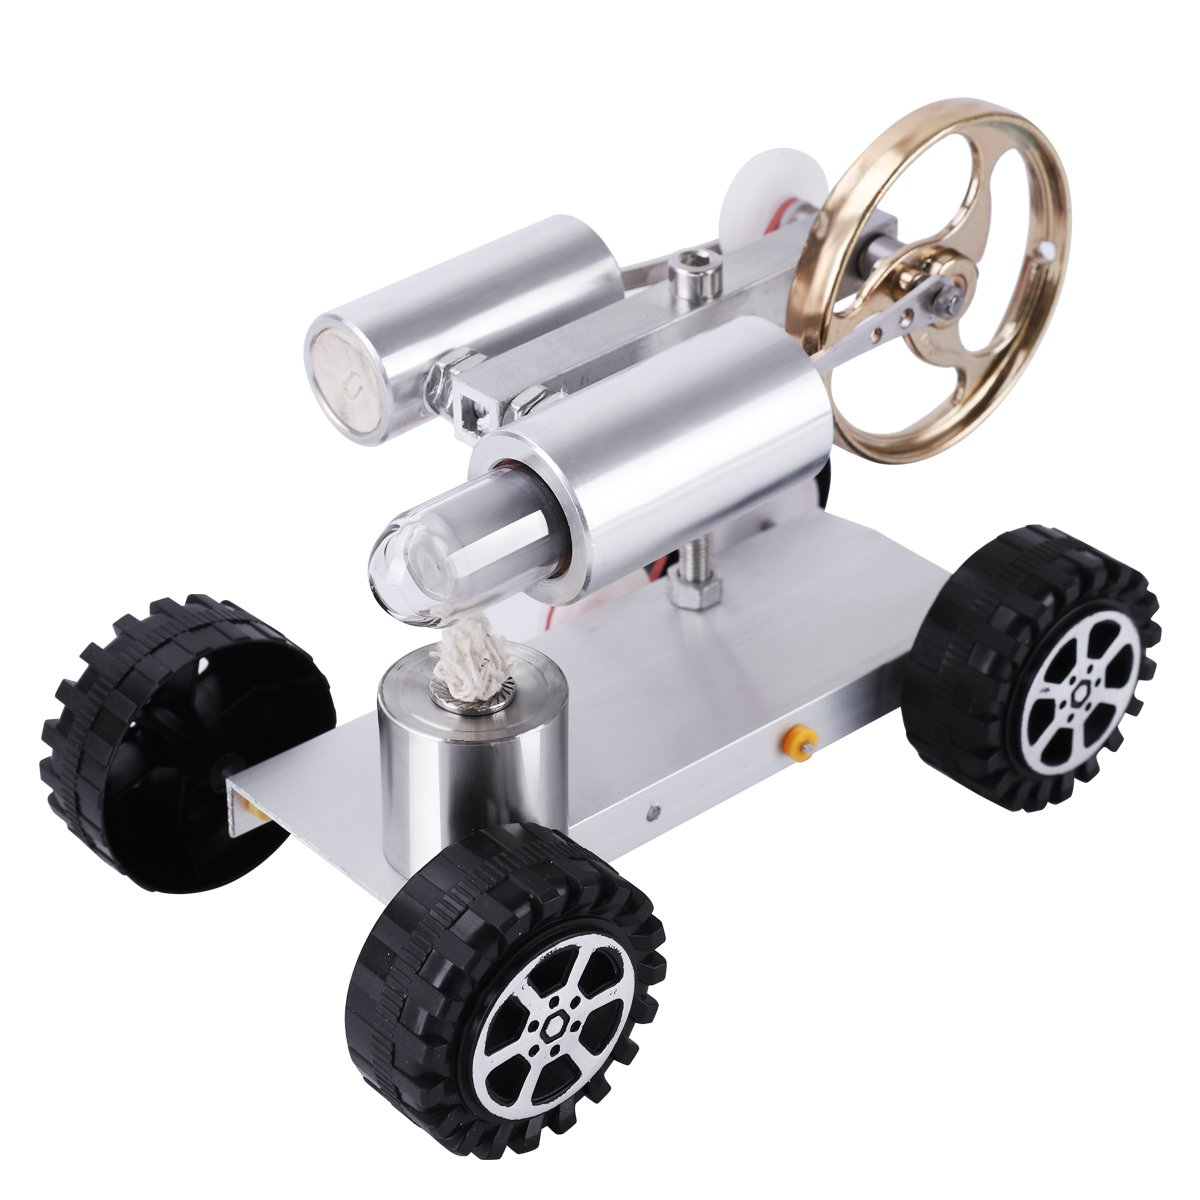 NASHRIO Stirling Heat Engine Model Car Kit Hot Air Educational Toy - Conversion of Heat Energy to Mechanical Work